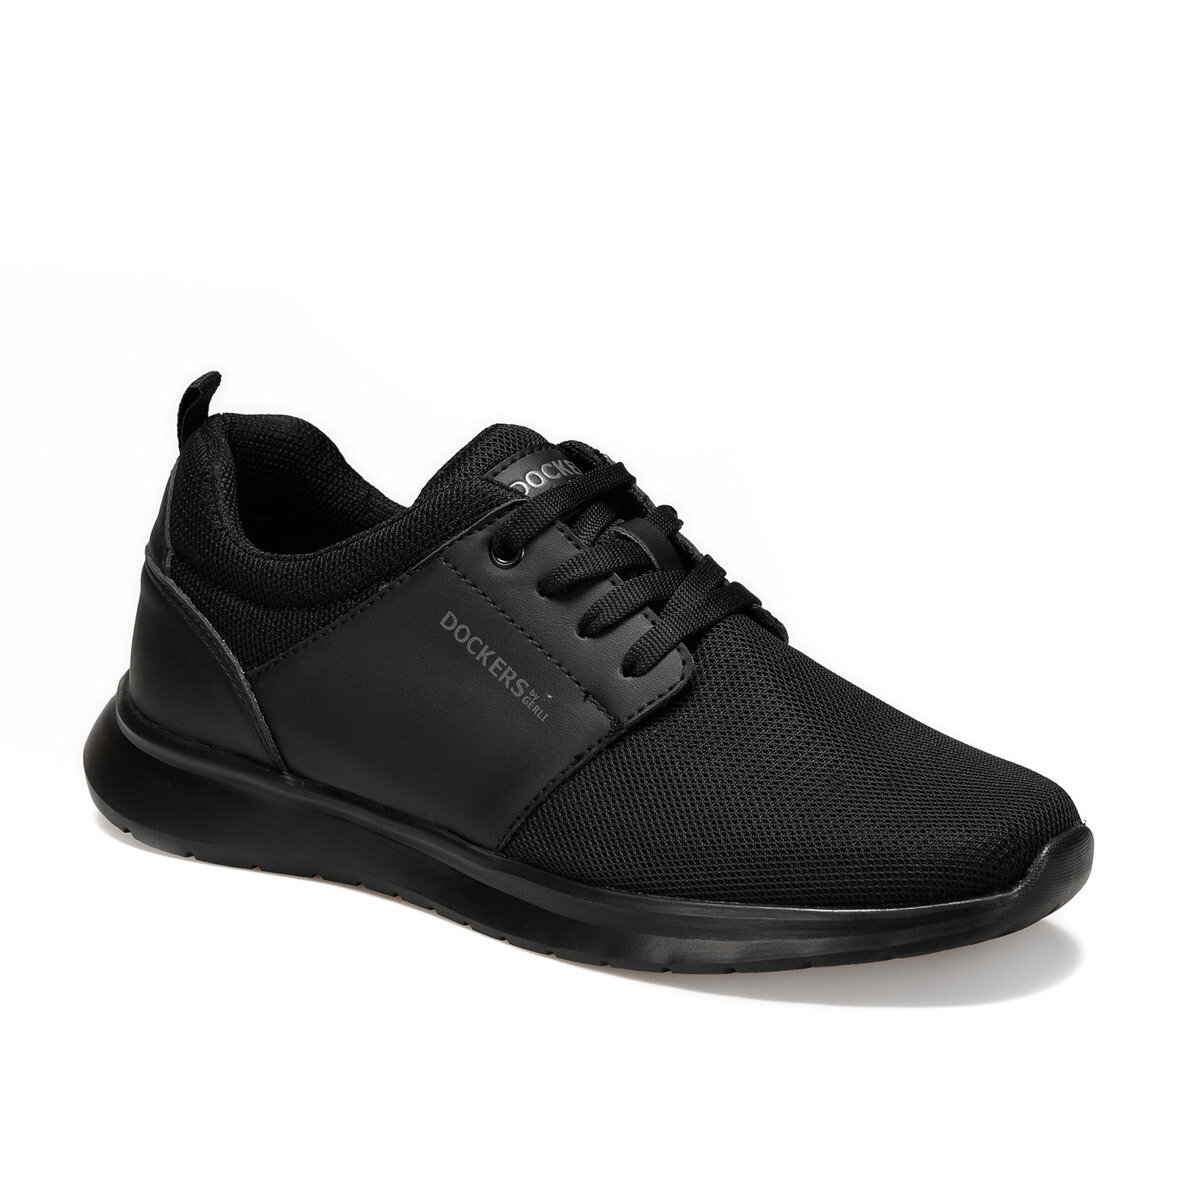 FLO 226197 Black Male Sports Shoes By Dockers The Gerle